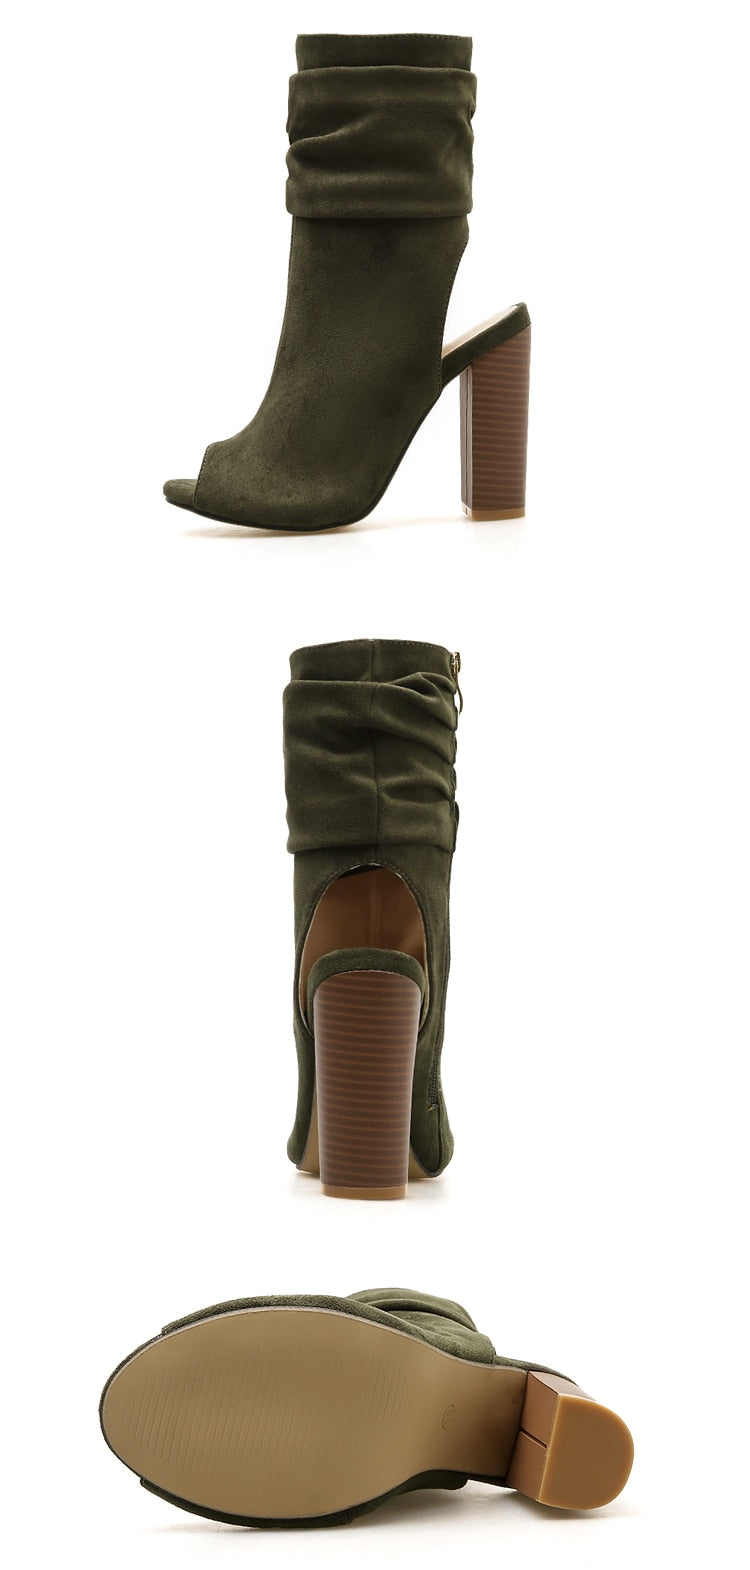 Open Toe High Heels  Boots Peep Toe with Zipper - Thj Fashion Boutique